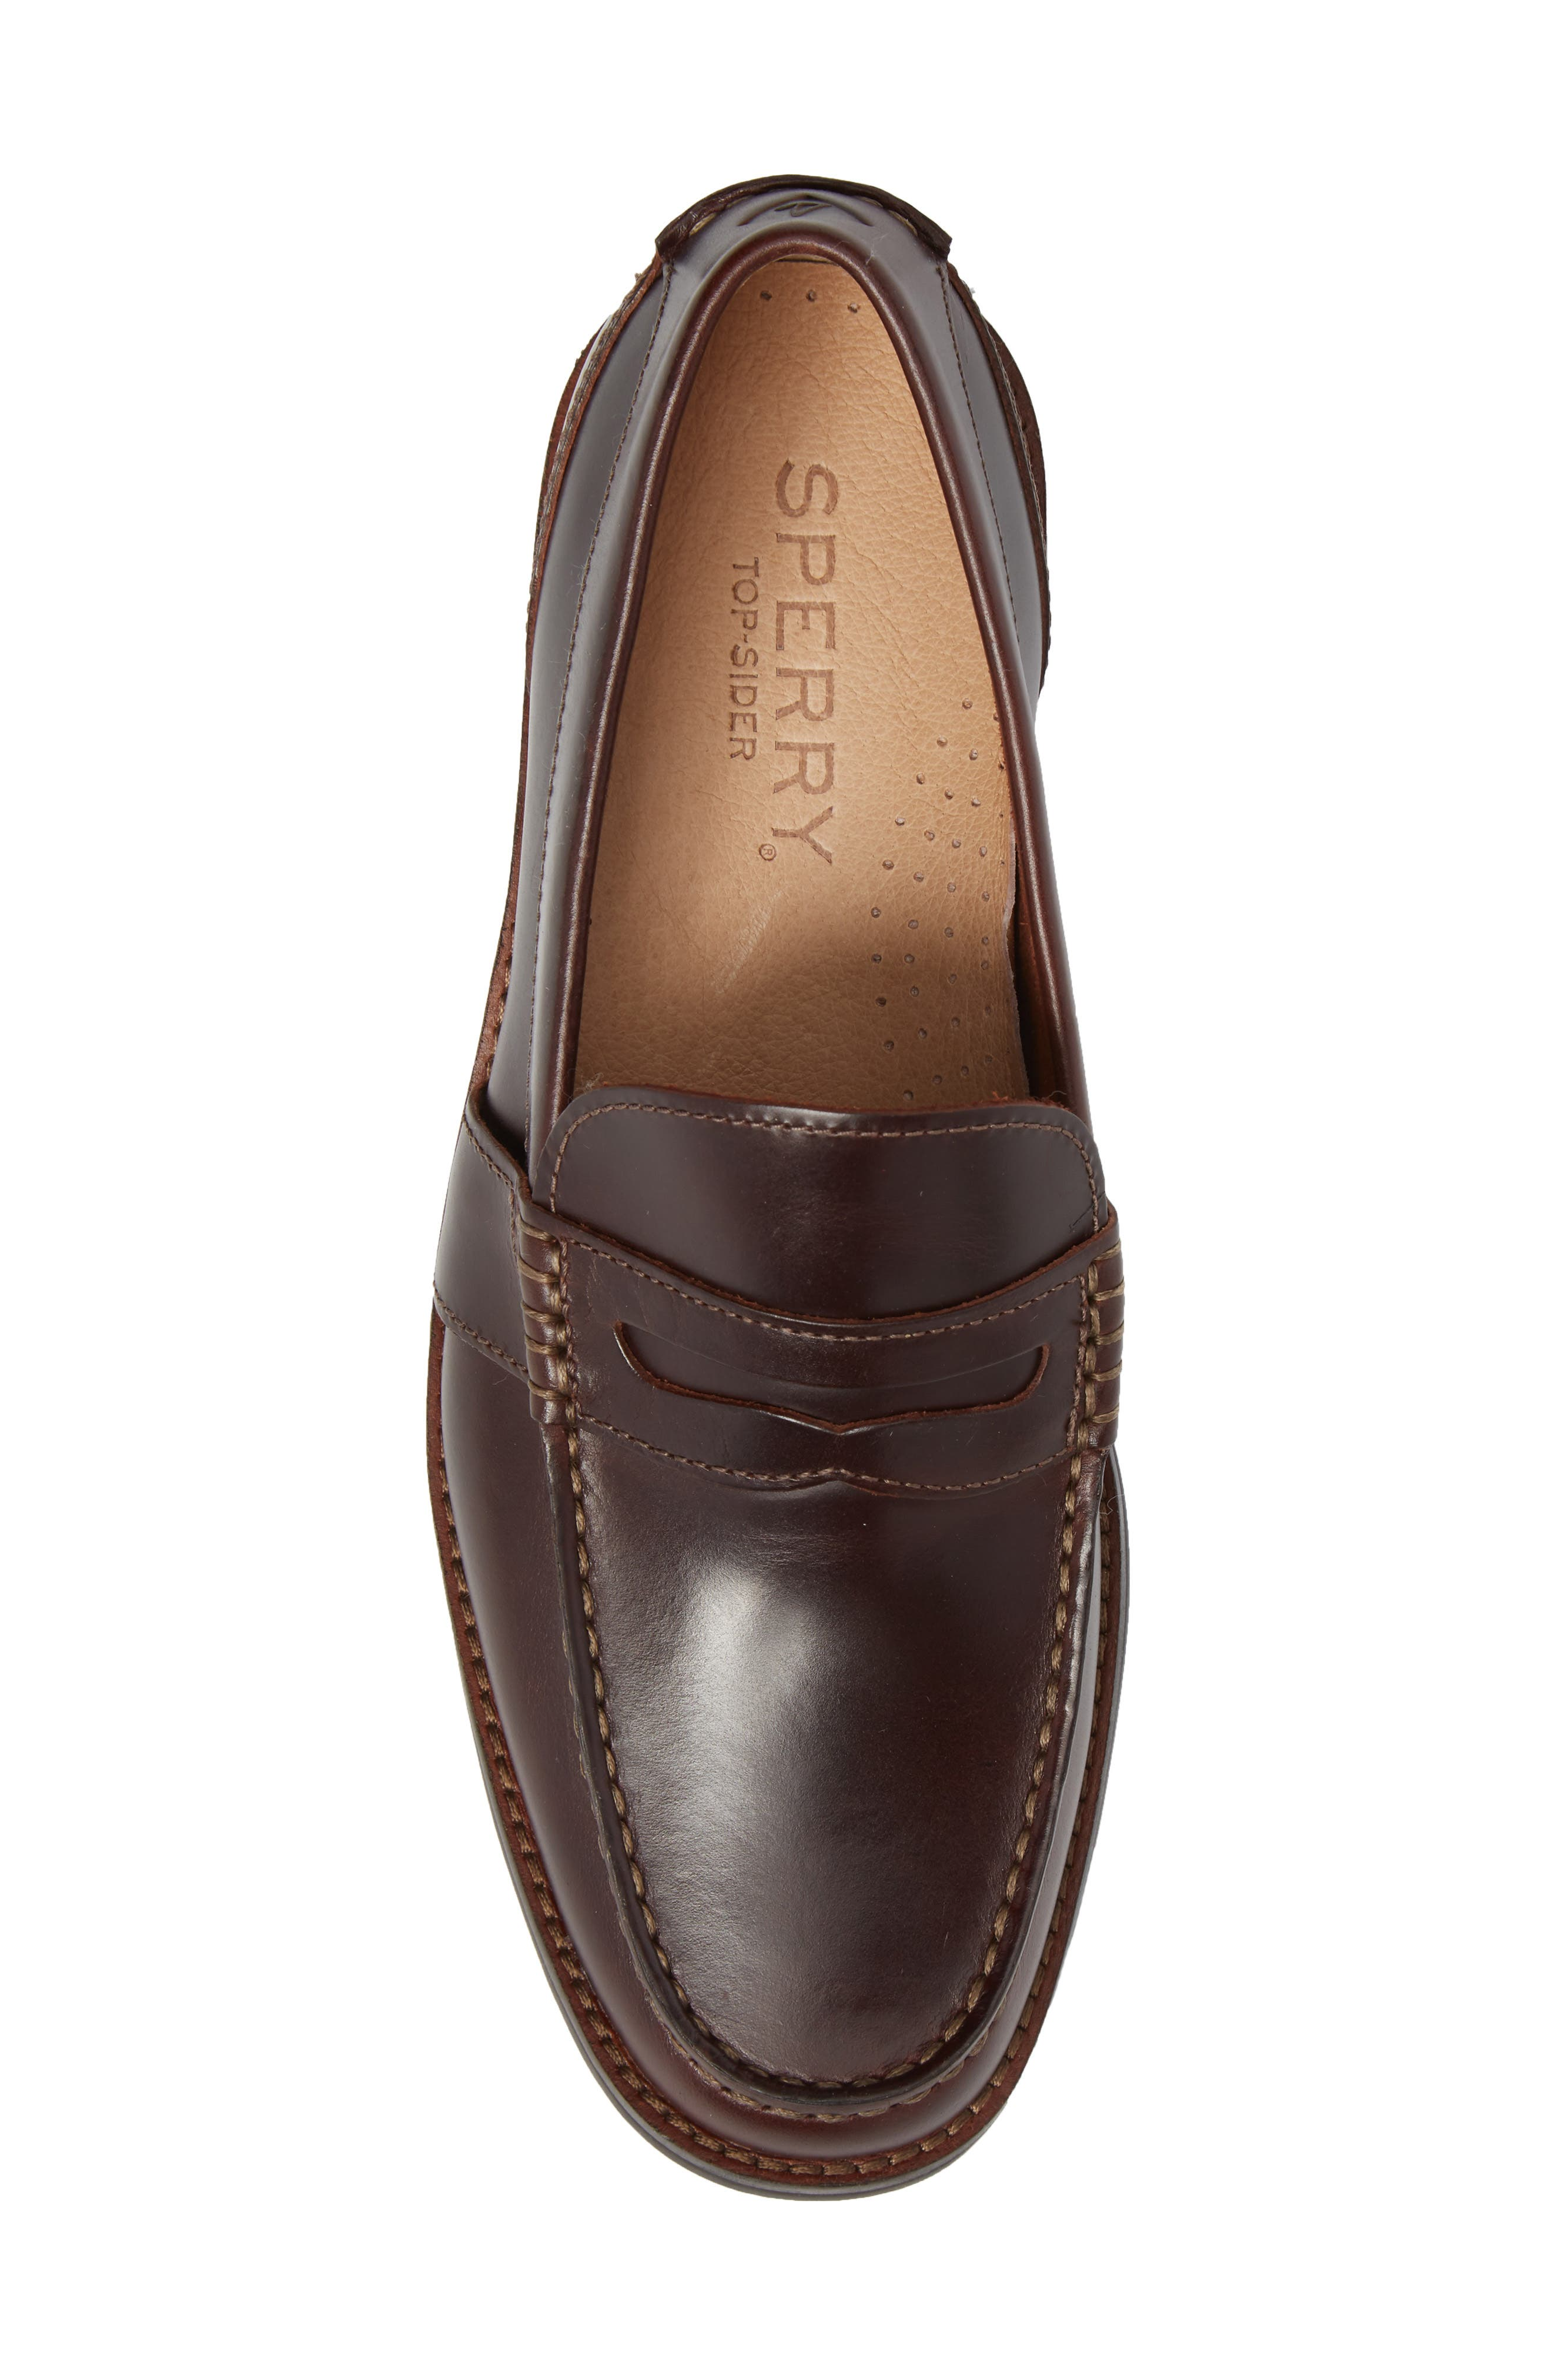 Essex Penny Loafer,                             Alternate thumbnail 5, color,                             AMARETTO LEATHER